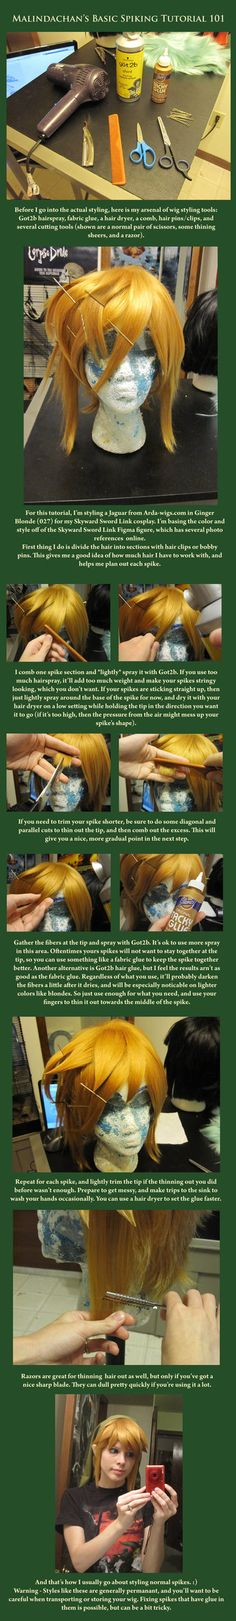 Wig Styling 101: Spiking  by *Malindachan - her spikes always look so clean.  Interesting choice of glue